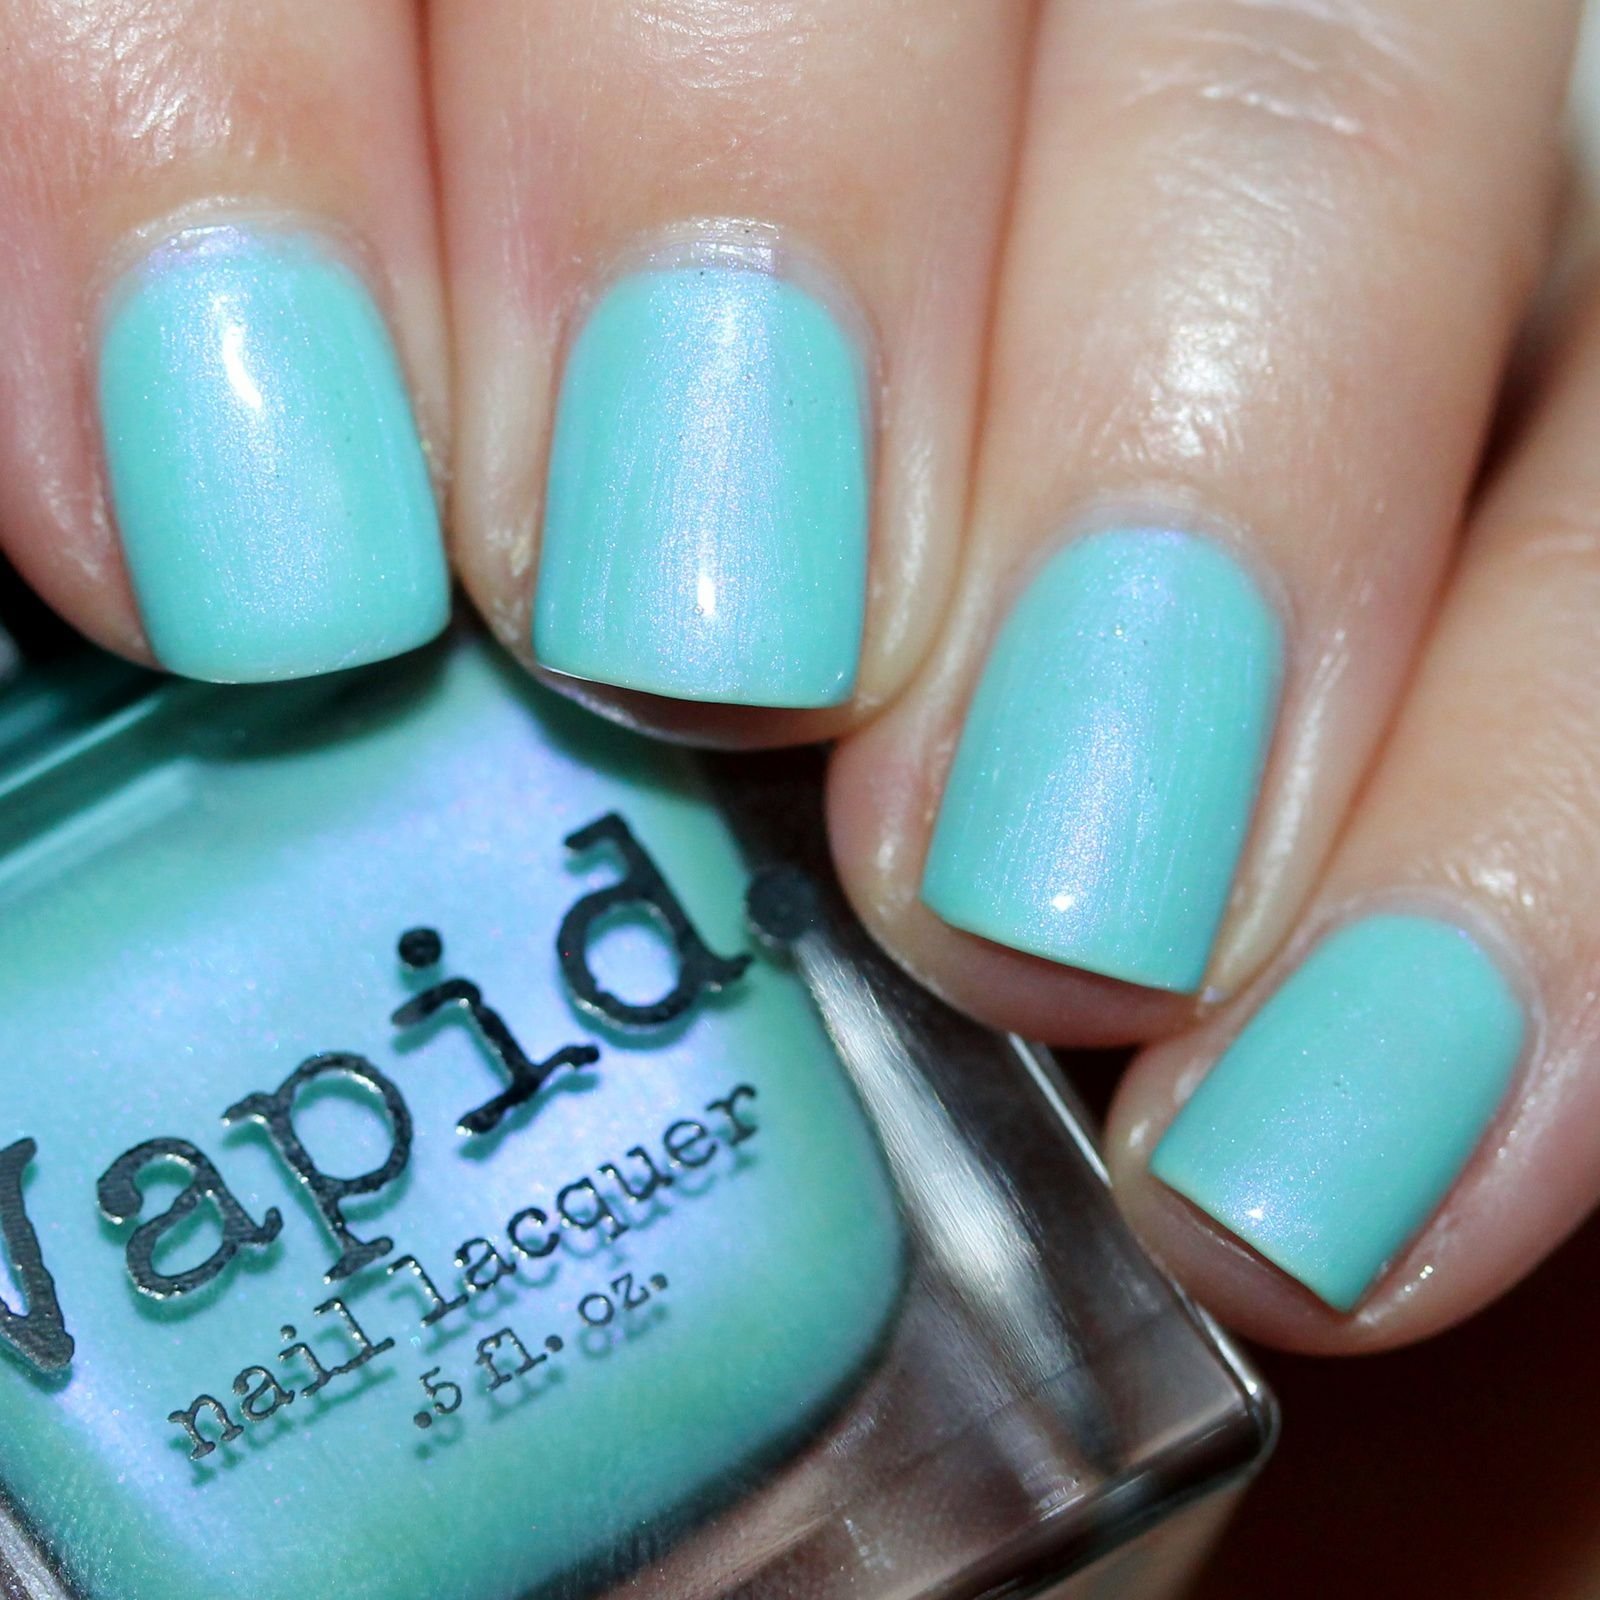 Sally Hansen Complete Care 4-in-1 Extra Moisturizing Nail Treatment / Vapid Lacquer Watercolor Octopus / Poshe Top Coat